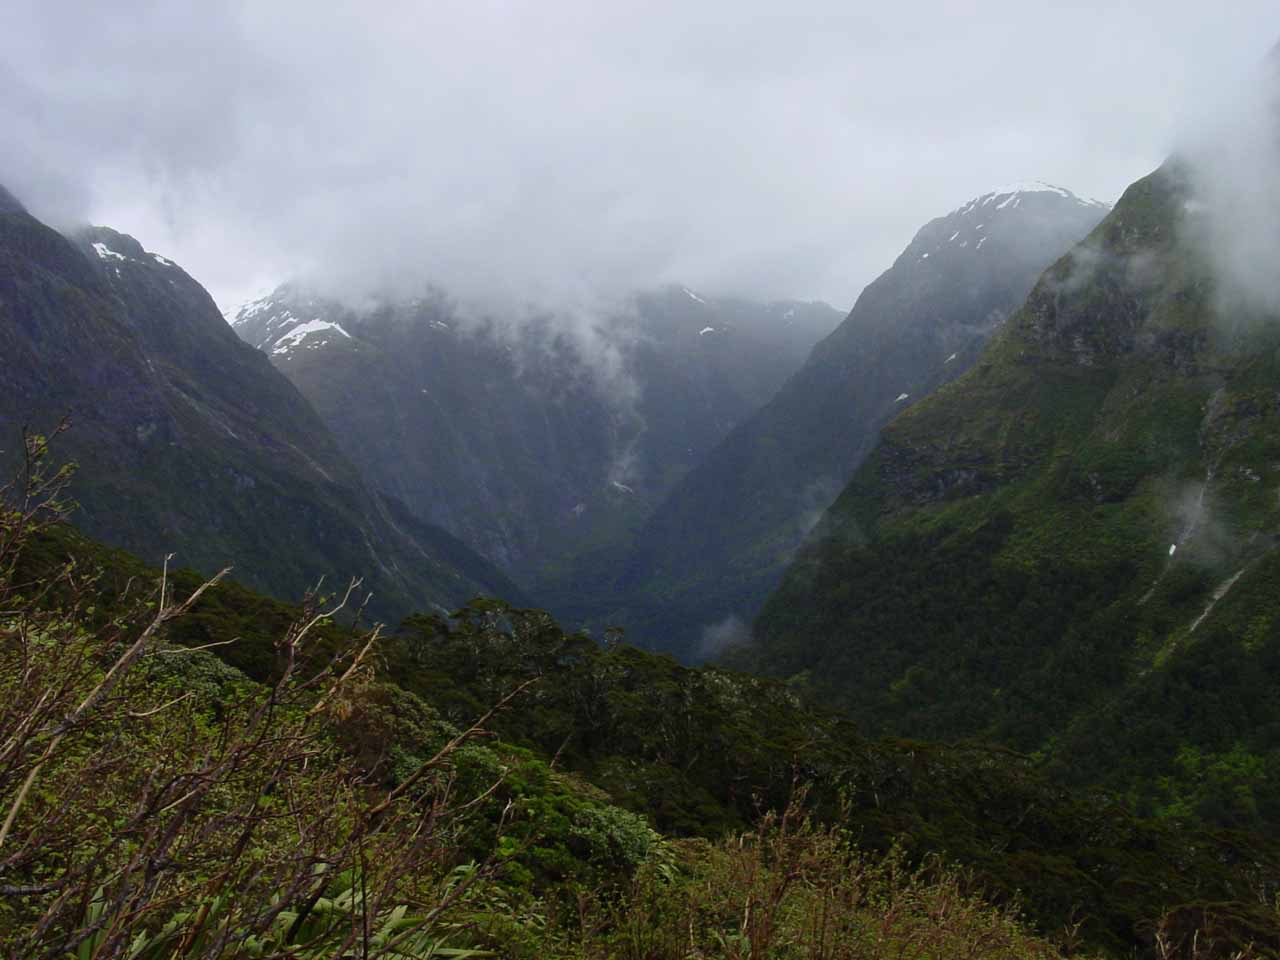 Looking into the steep Arthur Valley on the other side of Mackinnon Pass